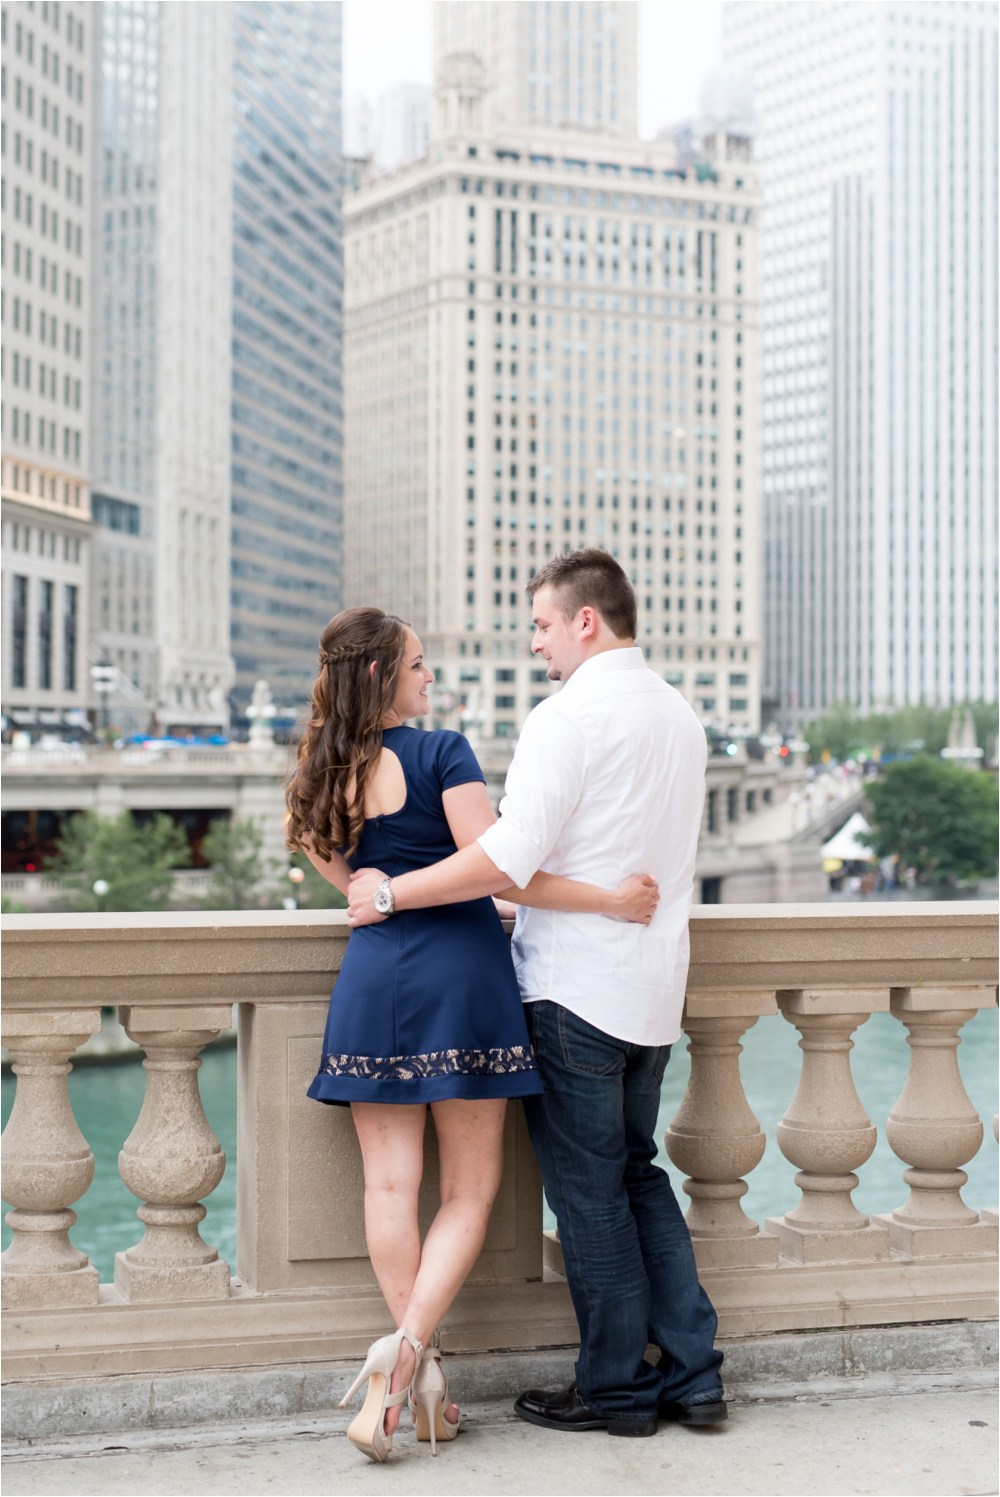 chicago-ilinois-michigna-ave-city-downtown-engagement-photo-19.jpg